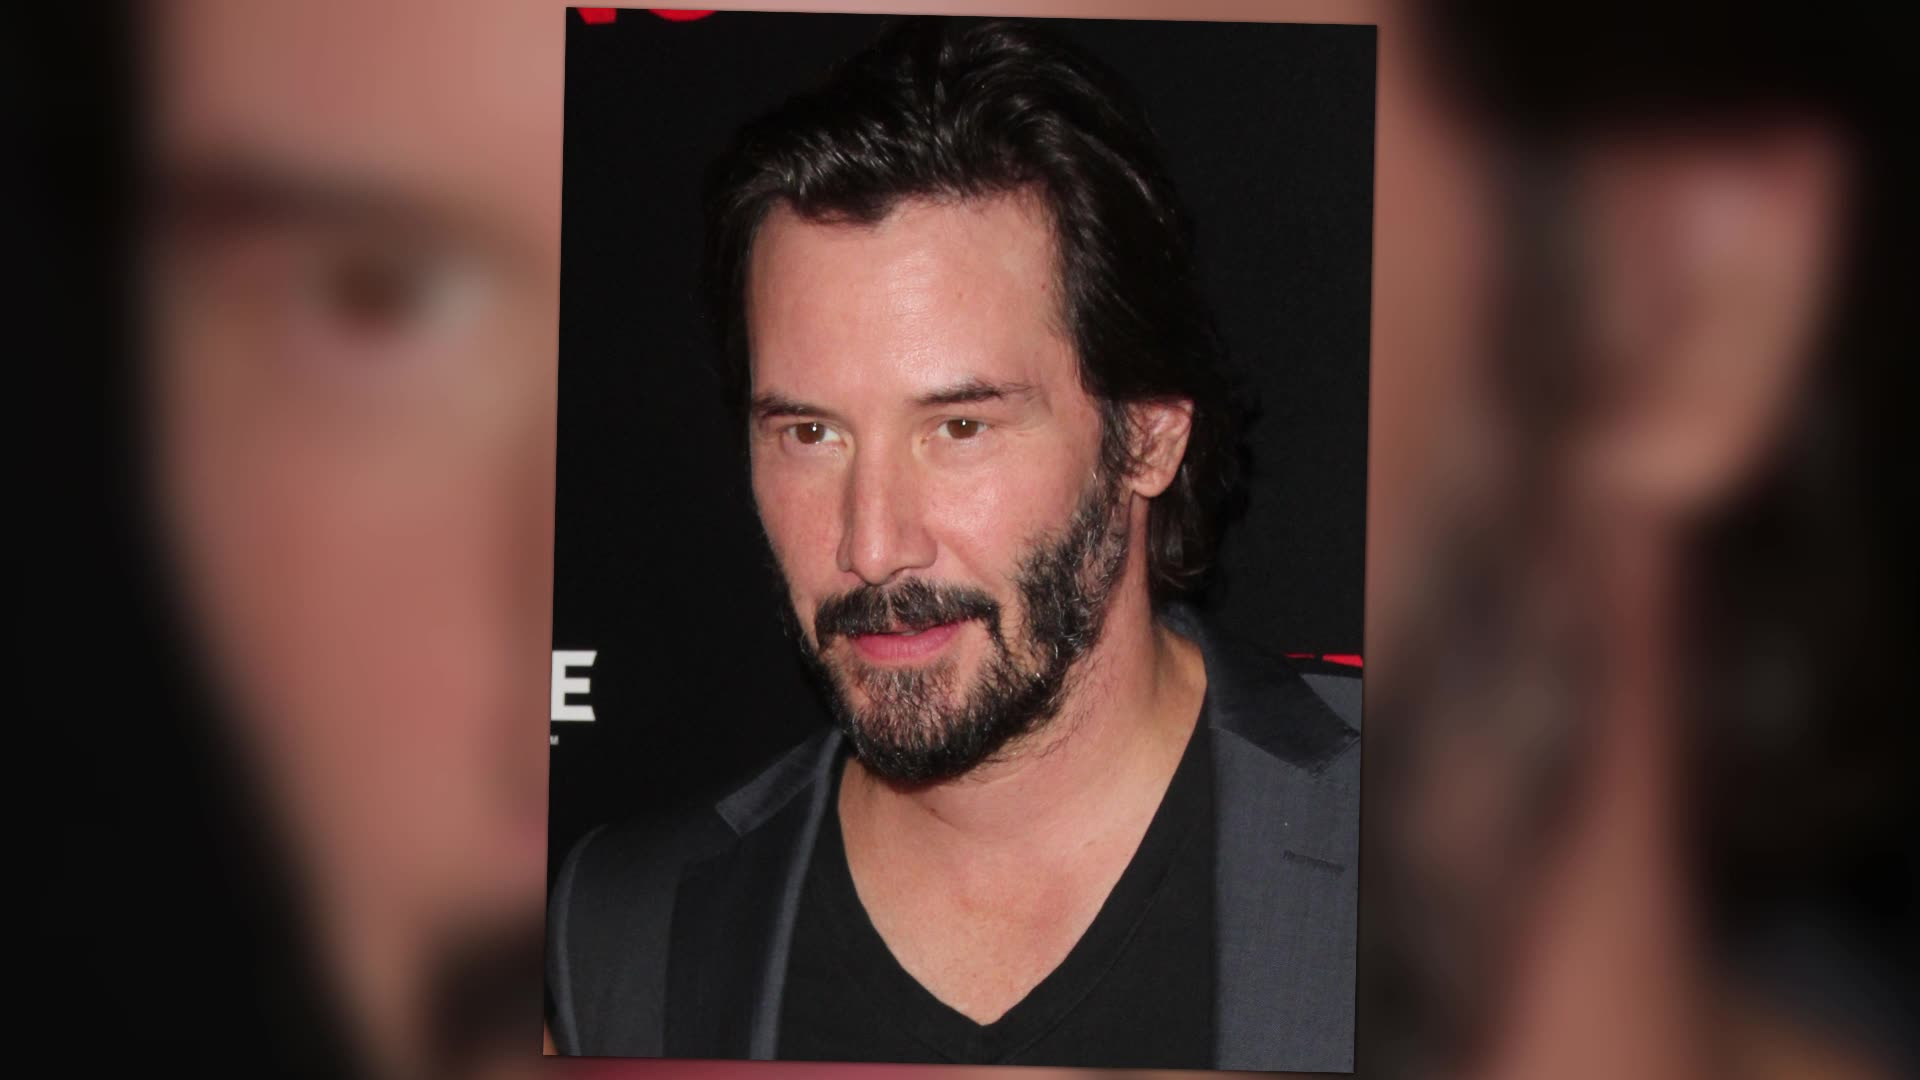 Keanu Reeves Looks Ruff And Ready At Knock Knock Premiere